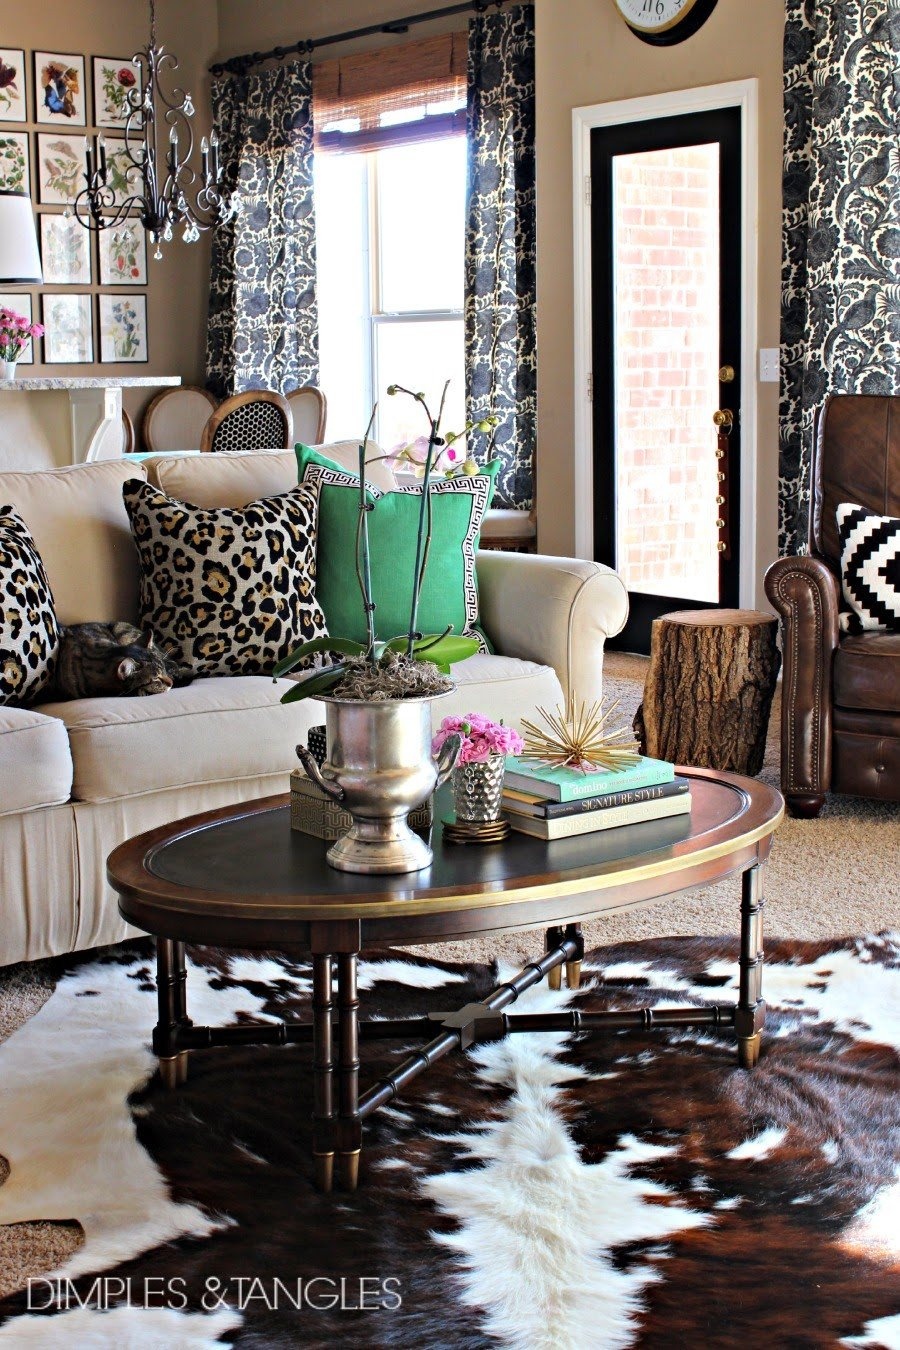 Rug for Living Room Ideas Inspirational My thoughts On Cowhide Rugs Dimples and Tangles